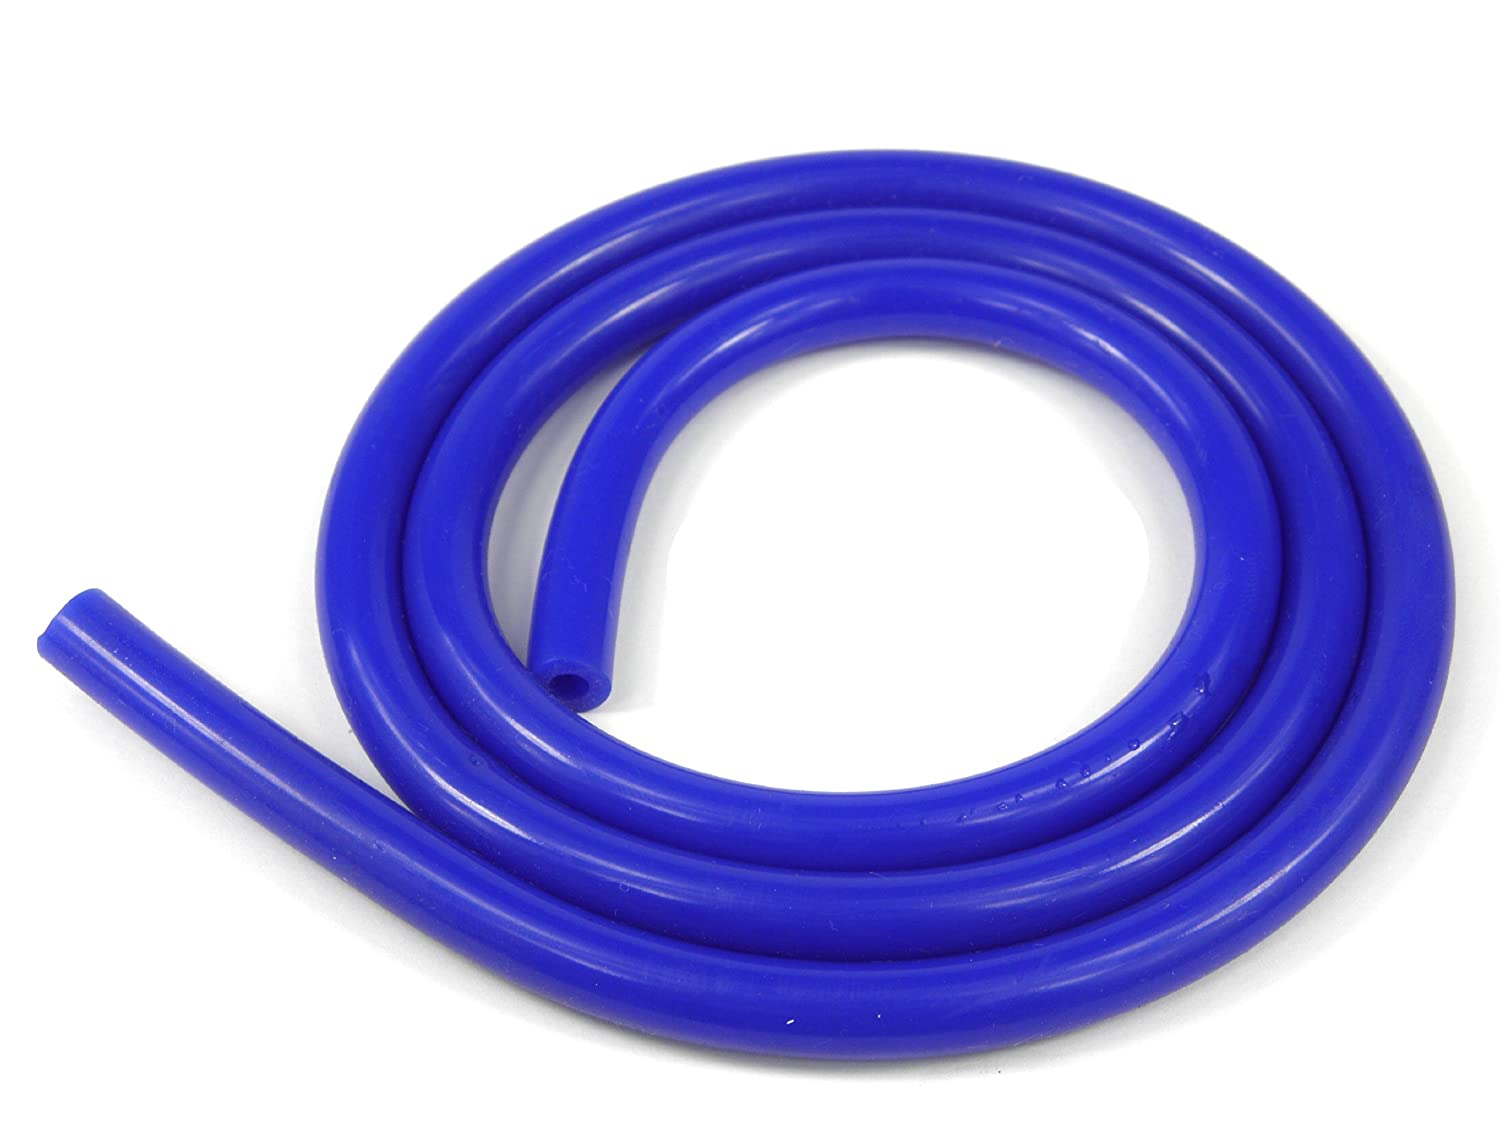 1 Metre Silicone Vacuum Vac Hose Pipe Tube 3mm ID 7mm OD Blue